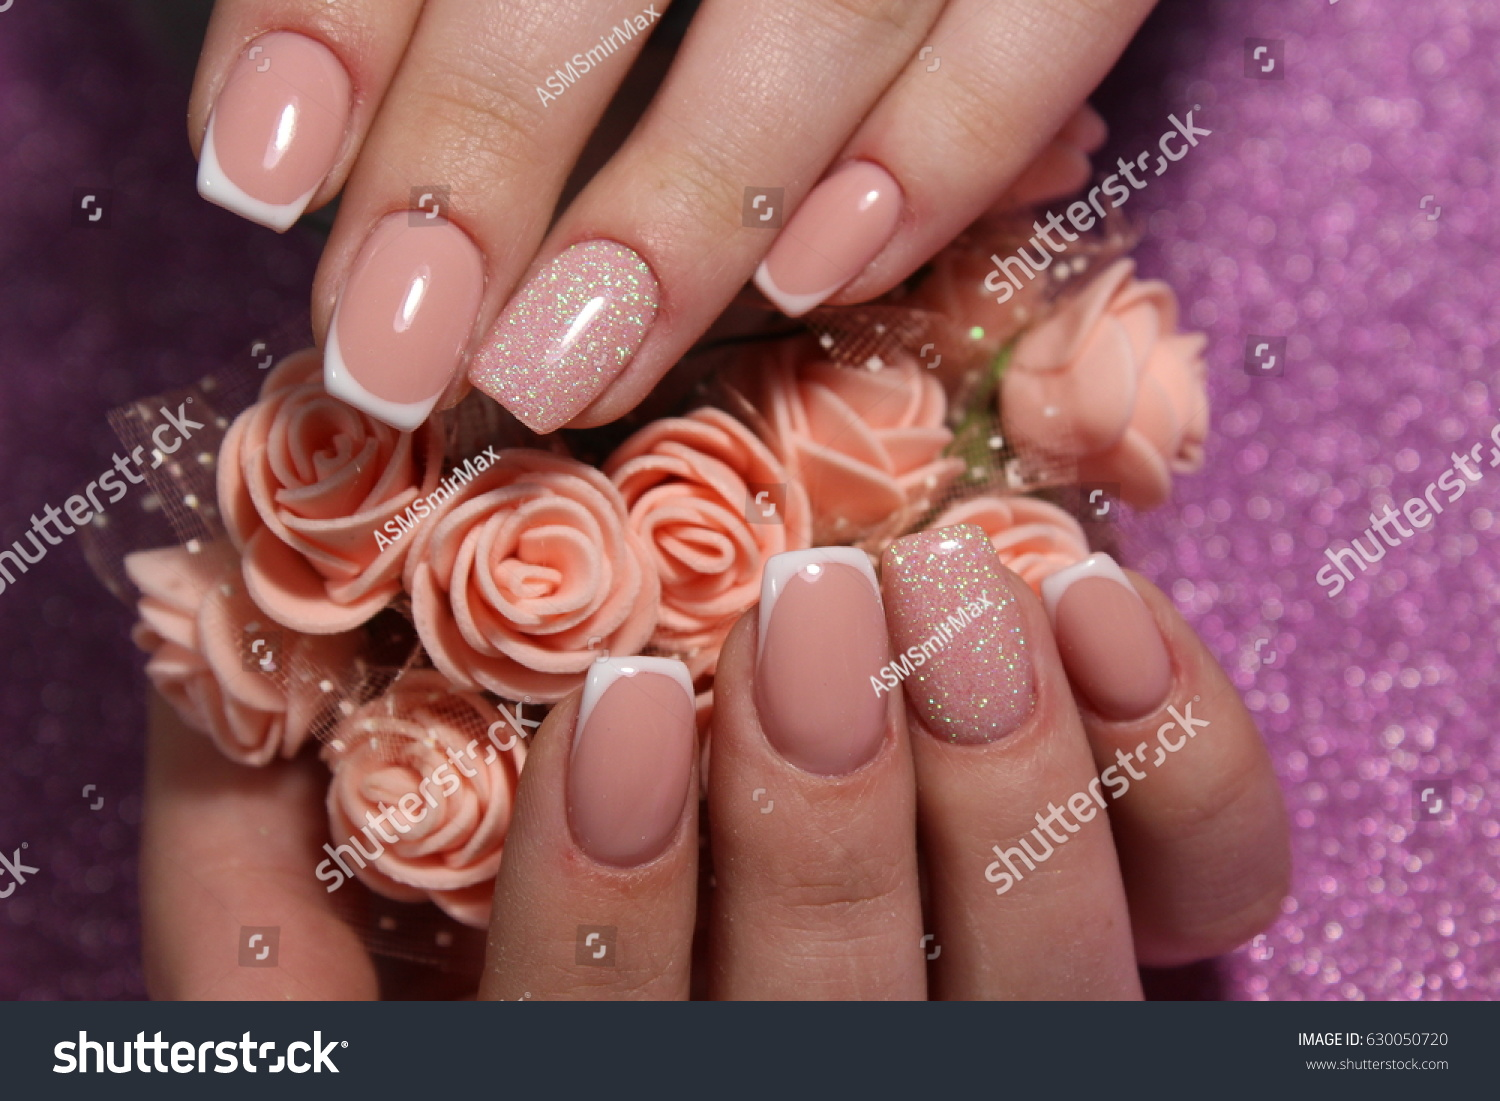 French Manicure Nail Design Stock Photo (100% Legal Protection ...